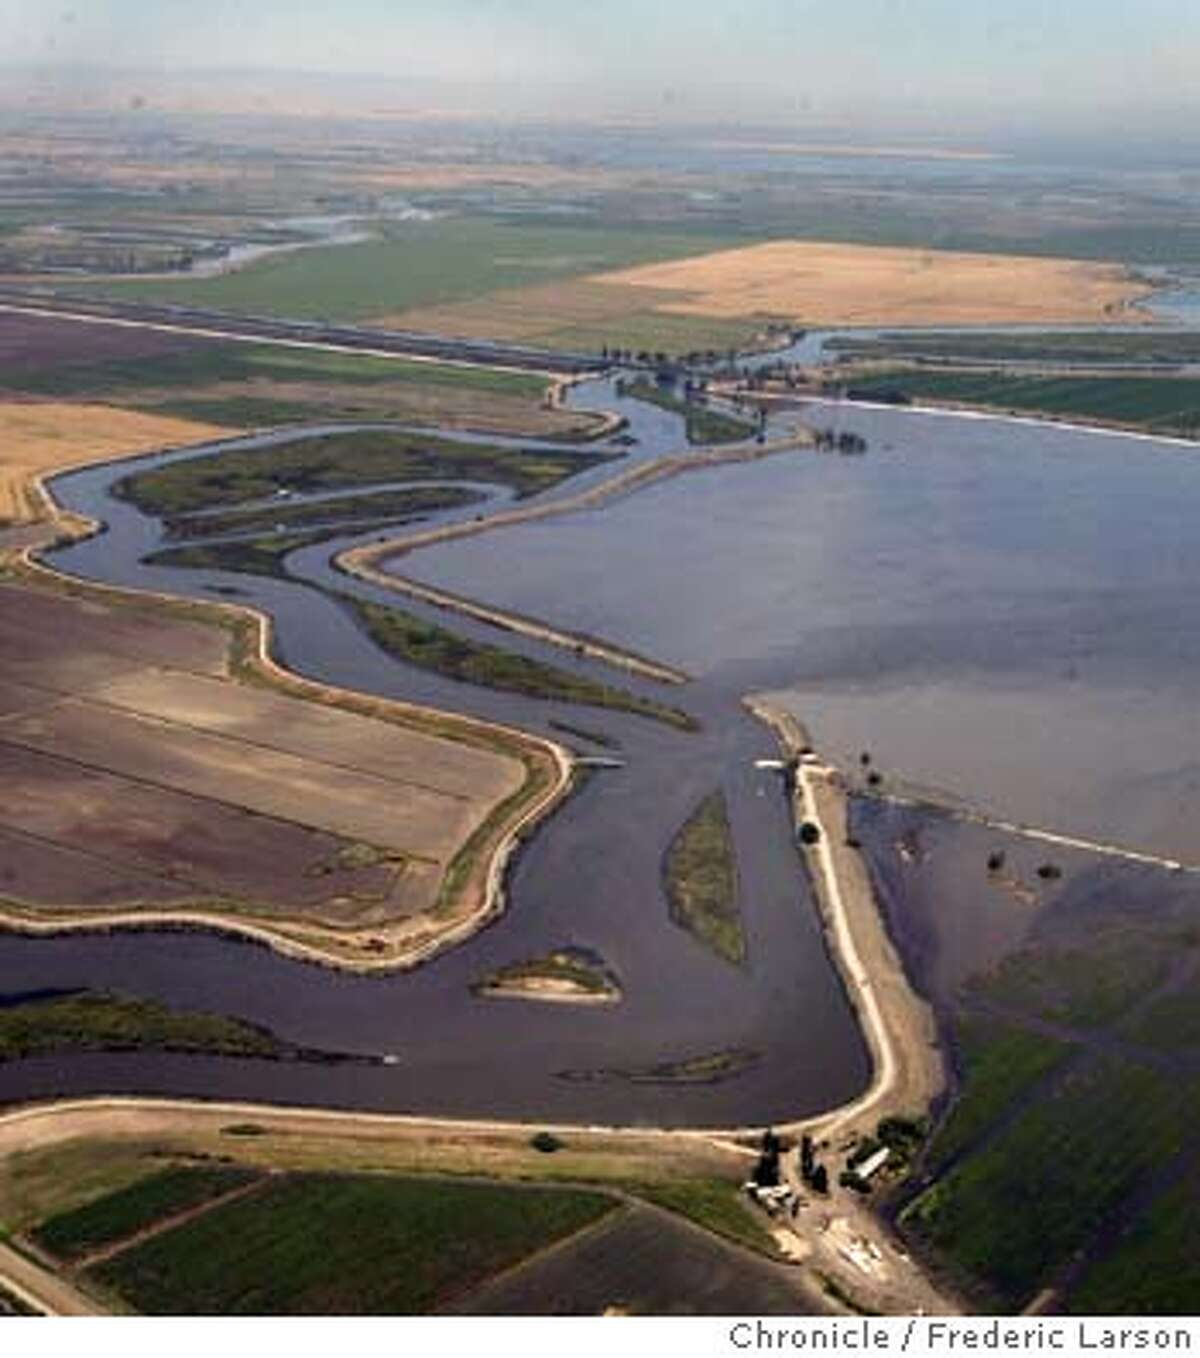 ; A levee break west of Stockton flooded farm fields on Bacon Island Thursday morning near a railroad line and pipelines that carry drinking water to the San Francisco Bay area. Neither the railroad line or water pipelines were immediately affected. Water officials were working to maintain the quality of drinking water flowing to cities as far away as Los Angeles. Coast Guard Petty Officer Wendy MacLean said about 65 feet of the levee gave way about 8:45 a.m. near the intersection of State Route 4 and West Bacon Island Road, north of Woodward Ferry. 6/3/04 San Francisco Chronicle Frederic Larson